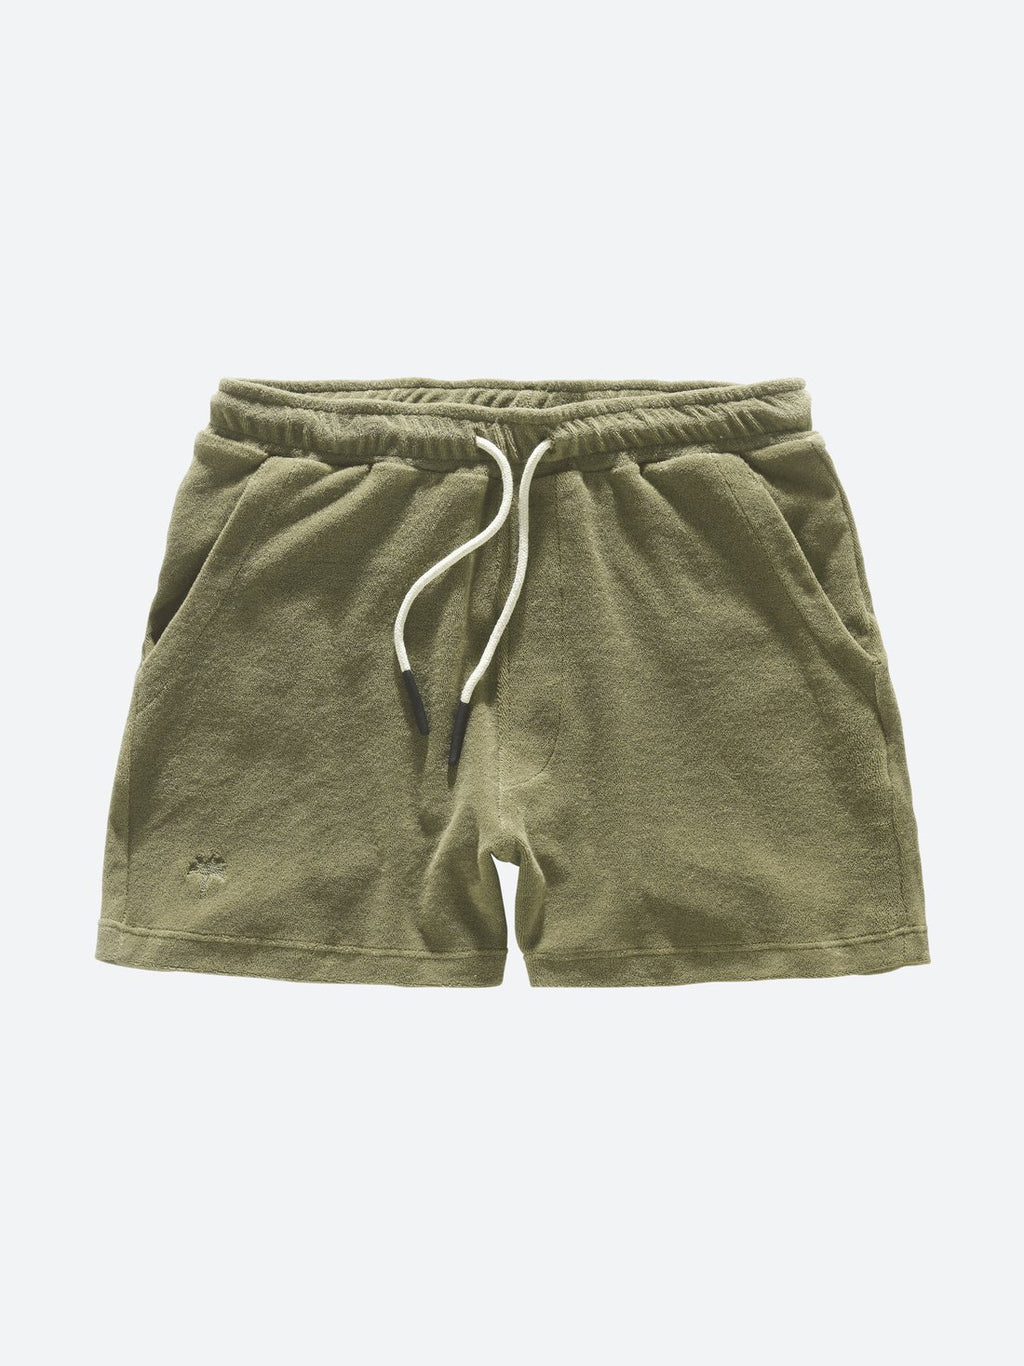 Oas Khaki Terry Shorts - Mojo Independent Store